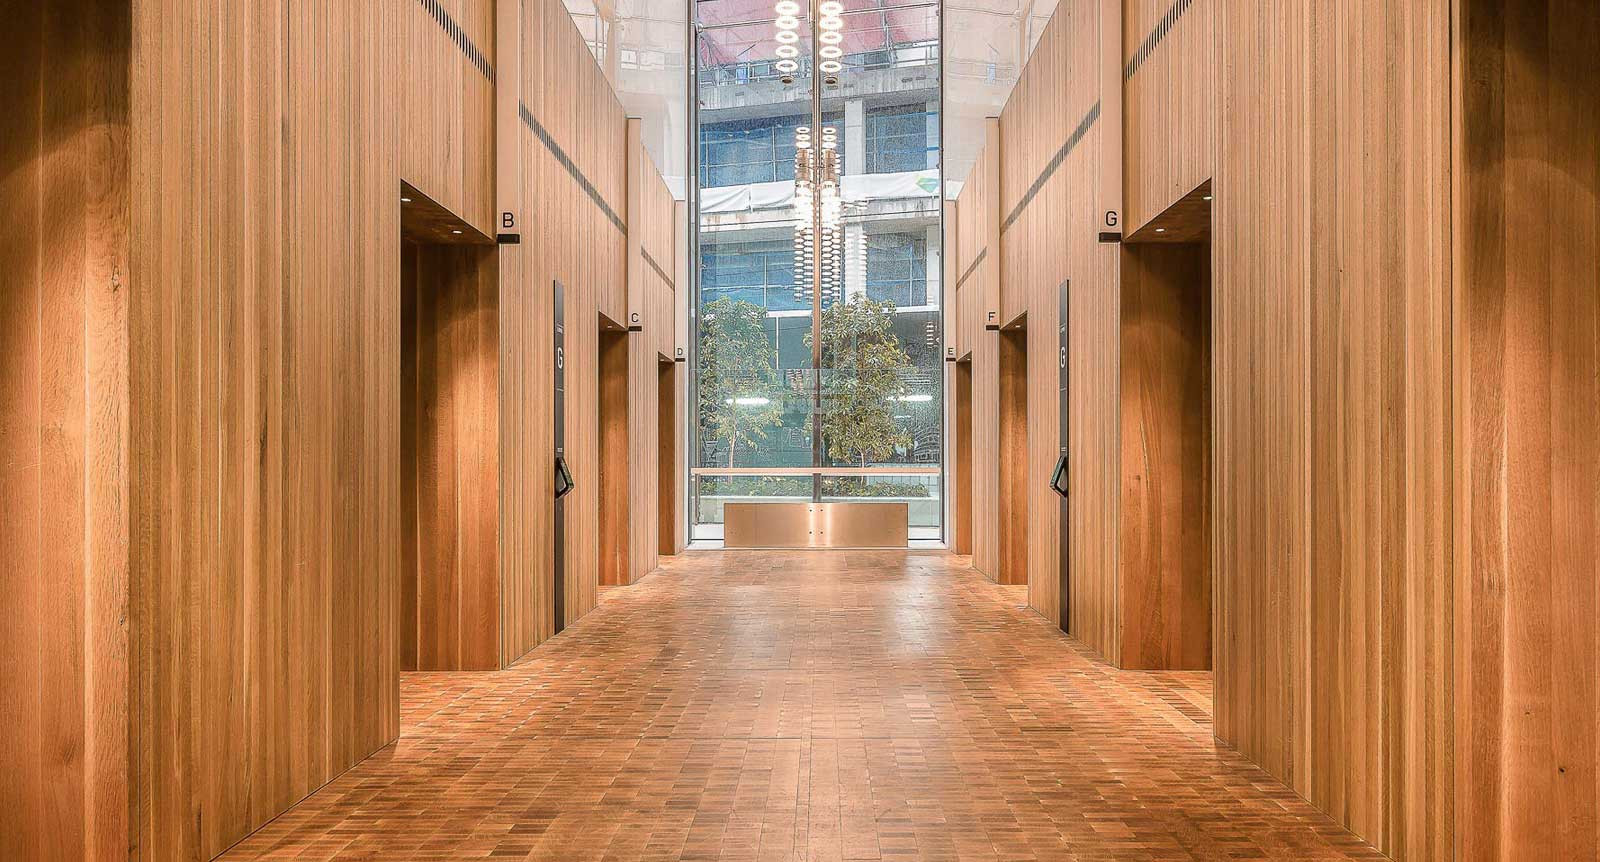 best hardwood flooring toronto of upper canada forest products ucfp news with regard to industry news case study how frank miller lumber was the solution for australias first